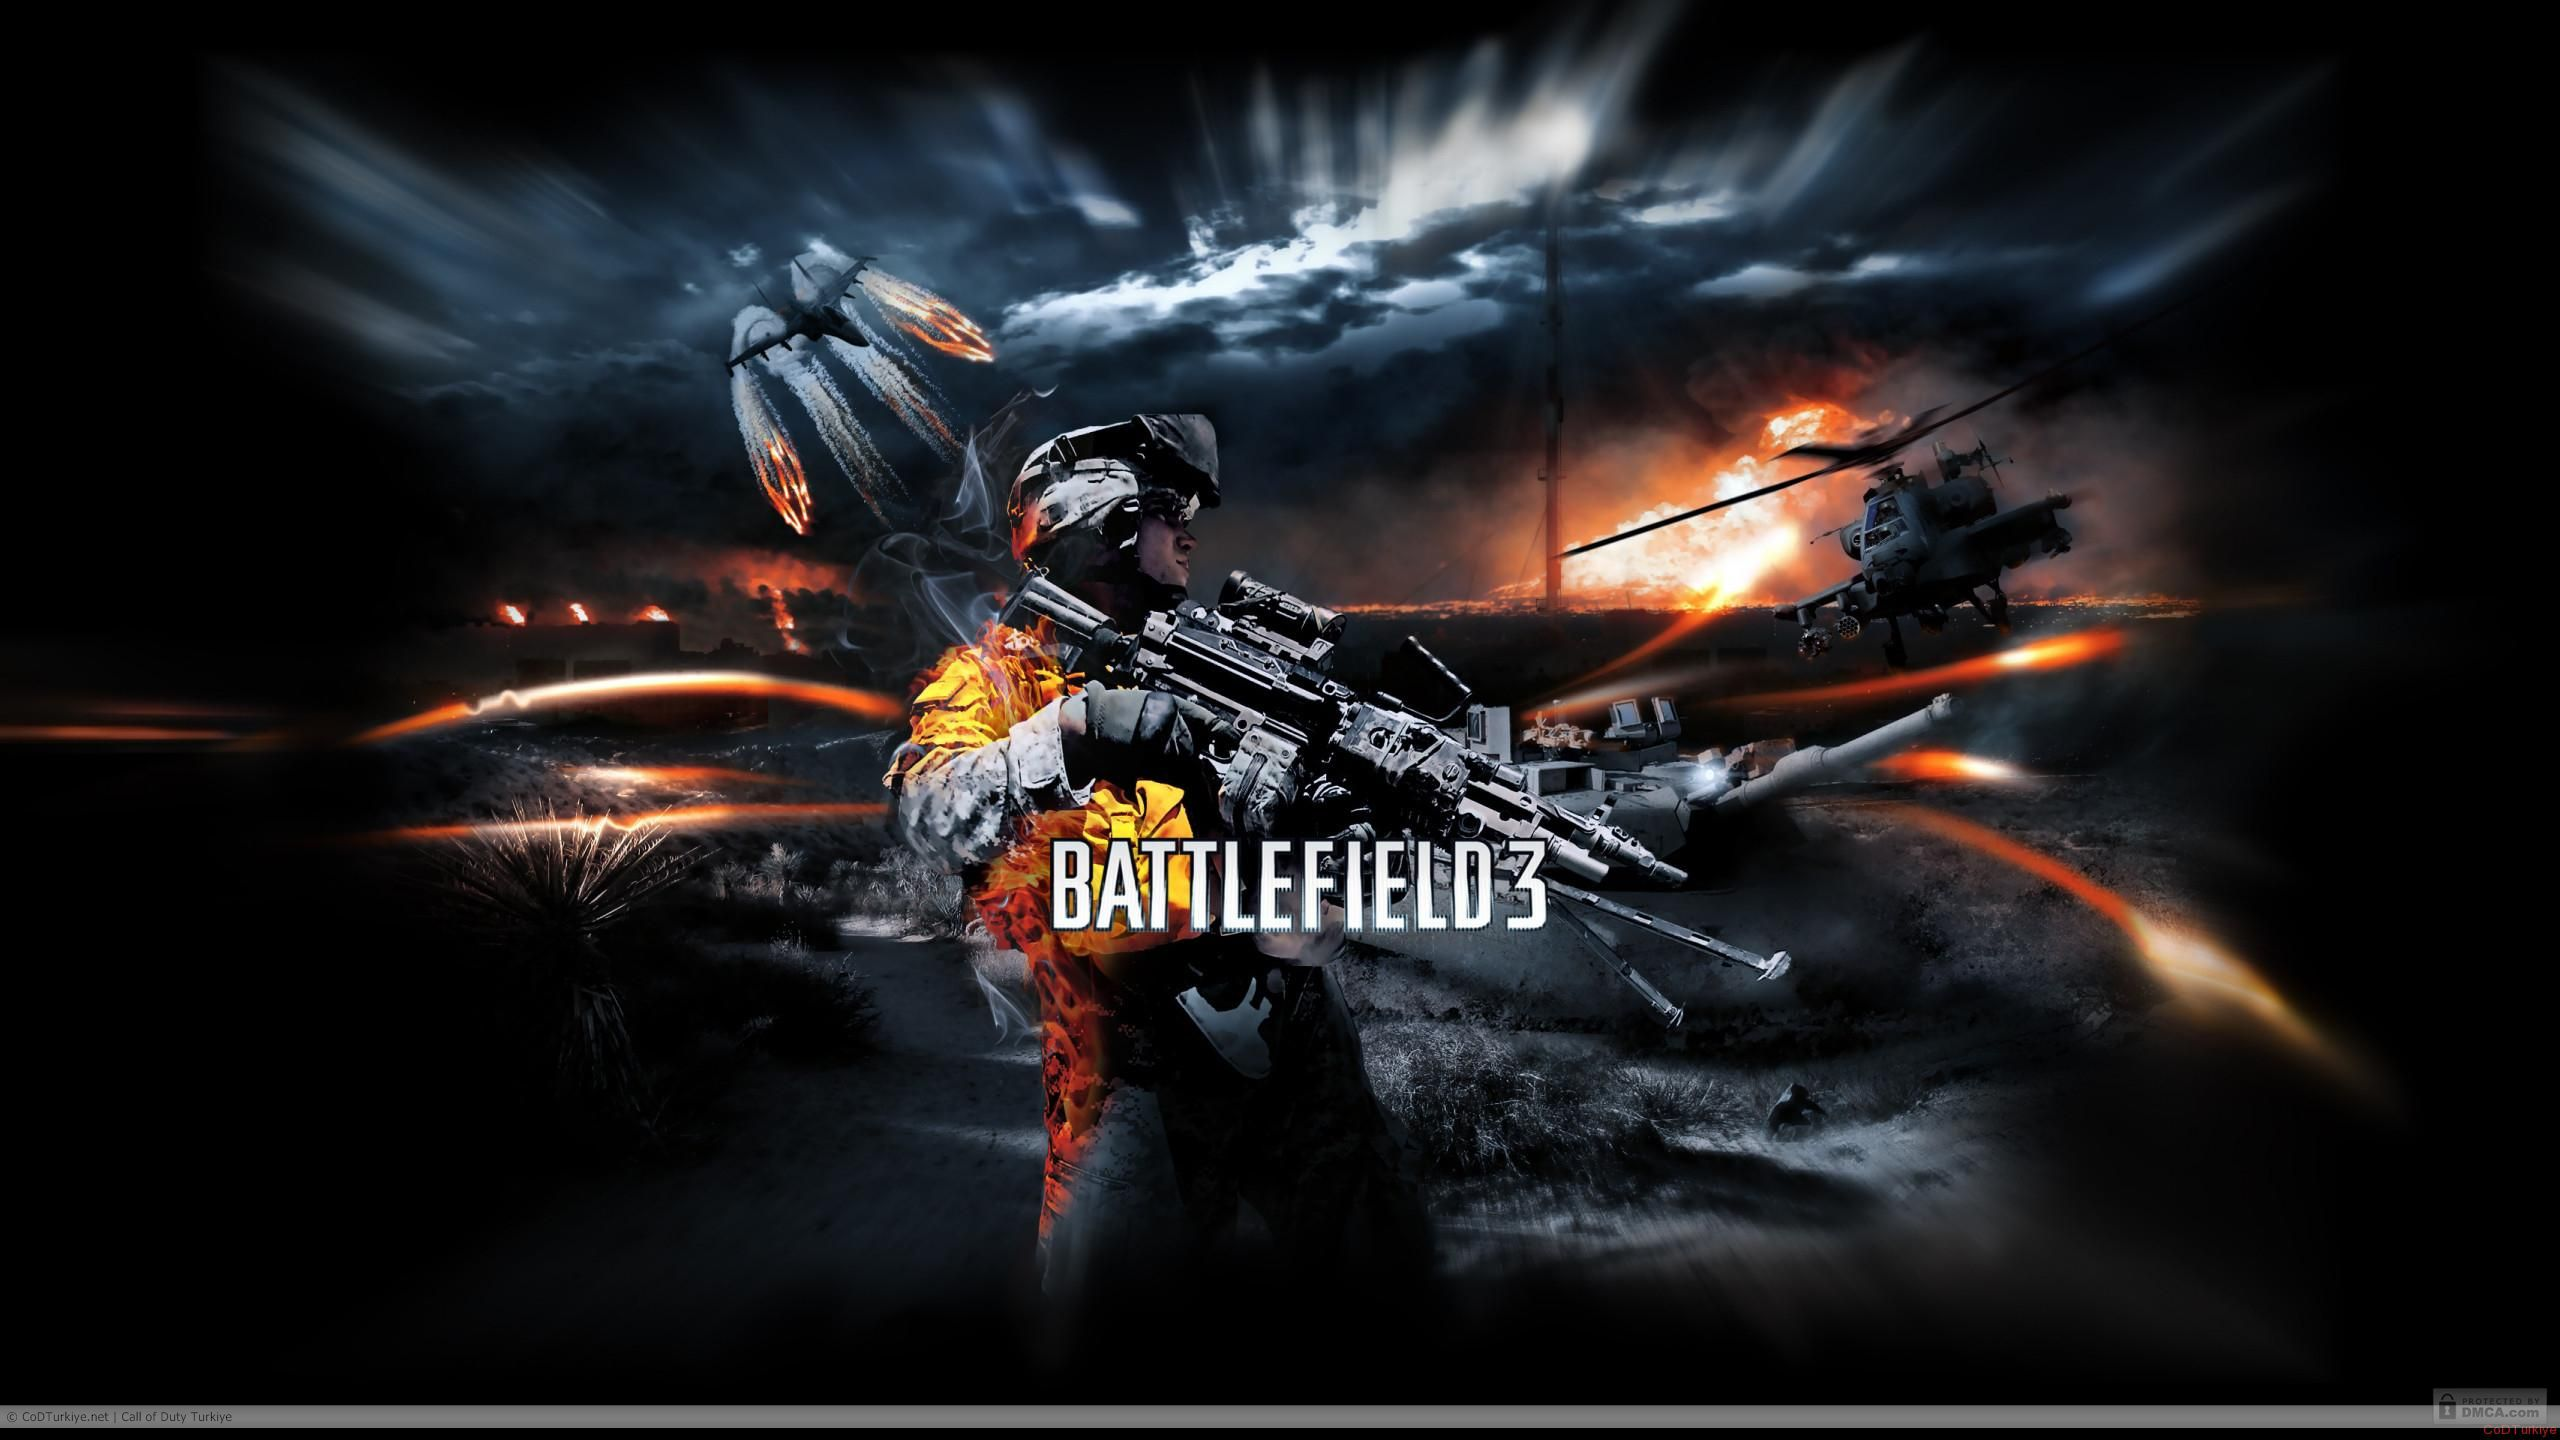 Battlefield 3 hd wallpapers codgallery for Wallpaper three